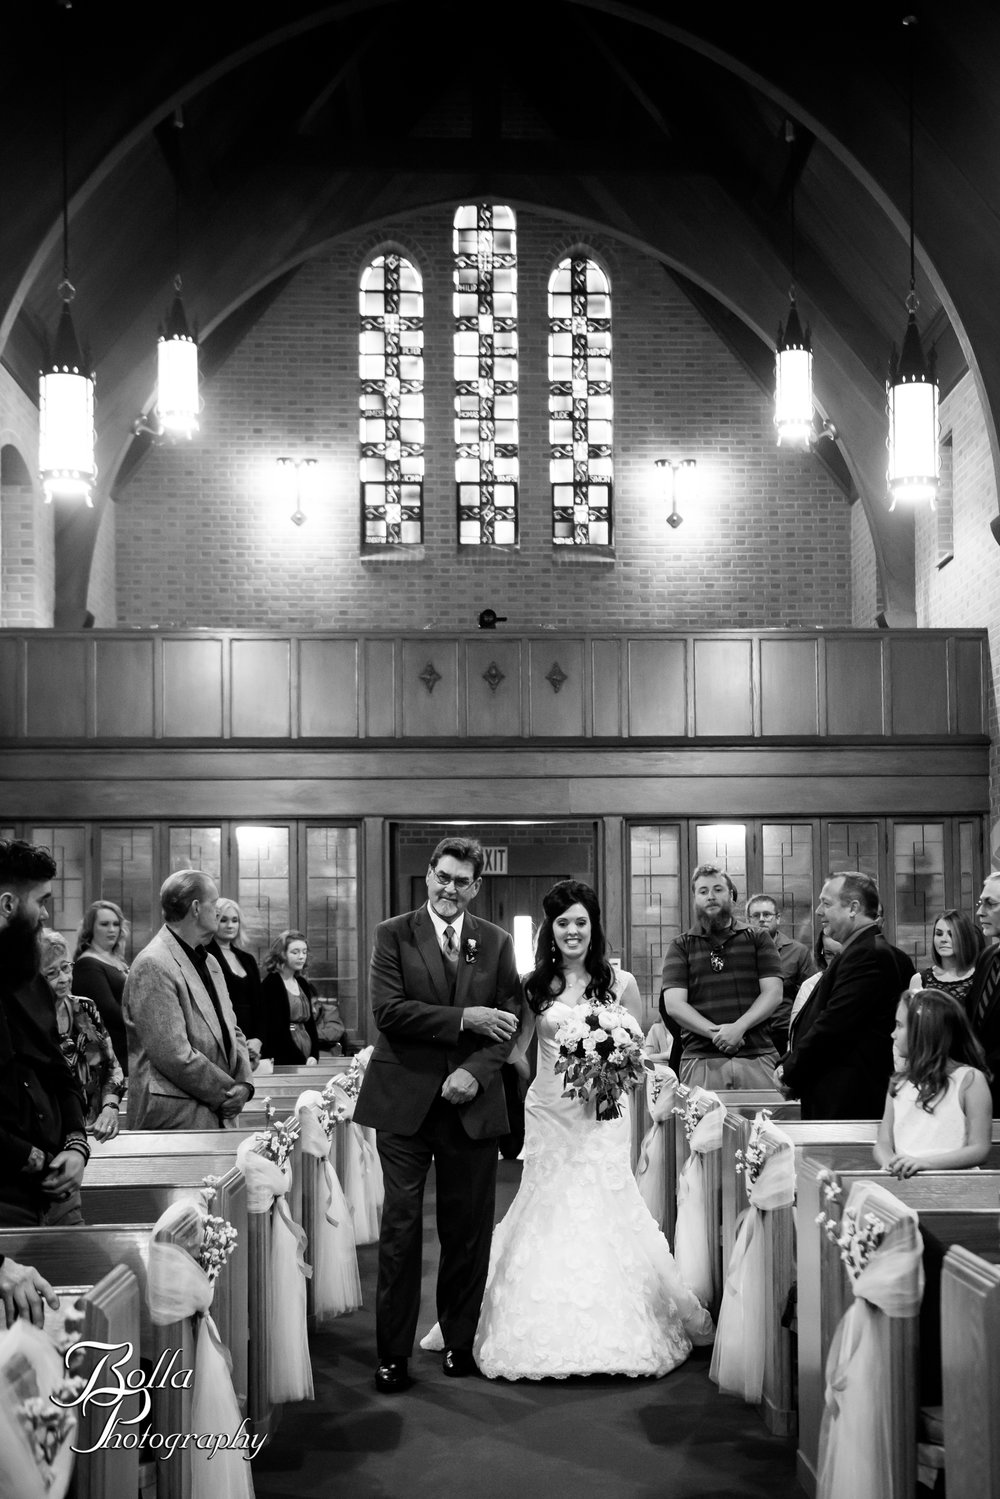 Bolla_photography_edwardsville_wedding_photographer_st_louis_weddings_Reilmann-0131.jpg